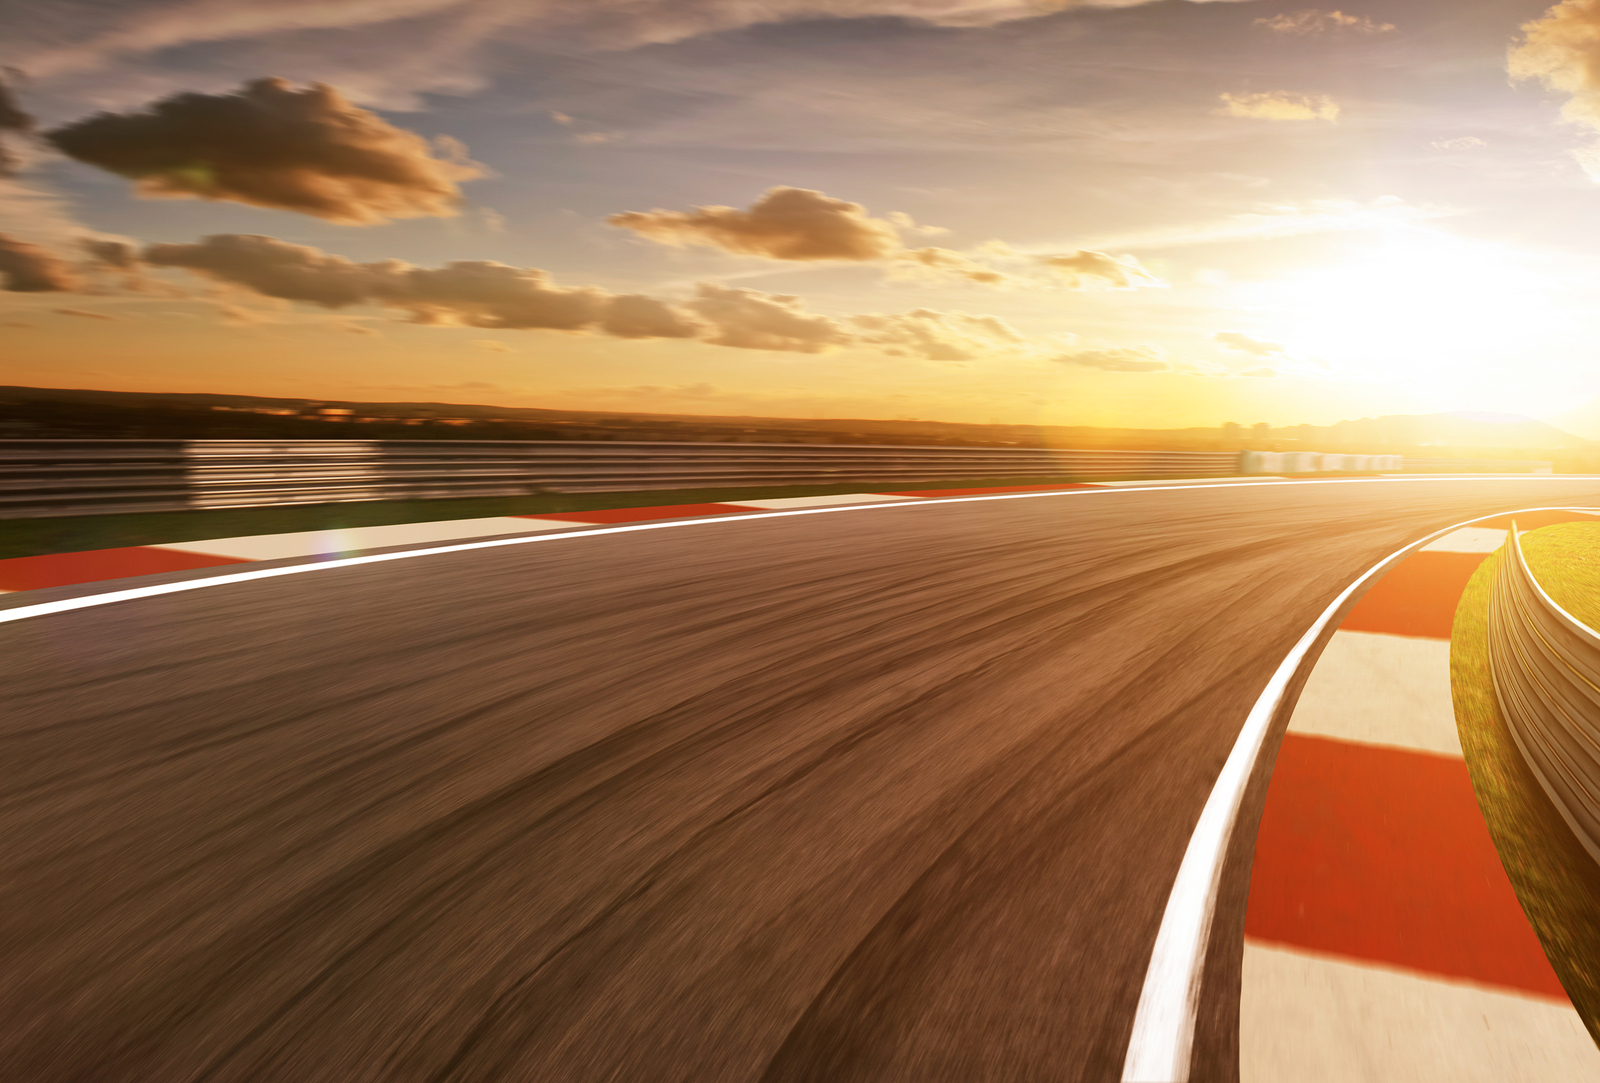 Racetrack to Faster Page Speed